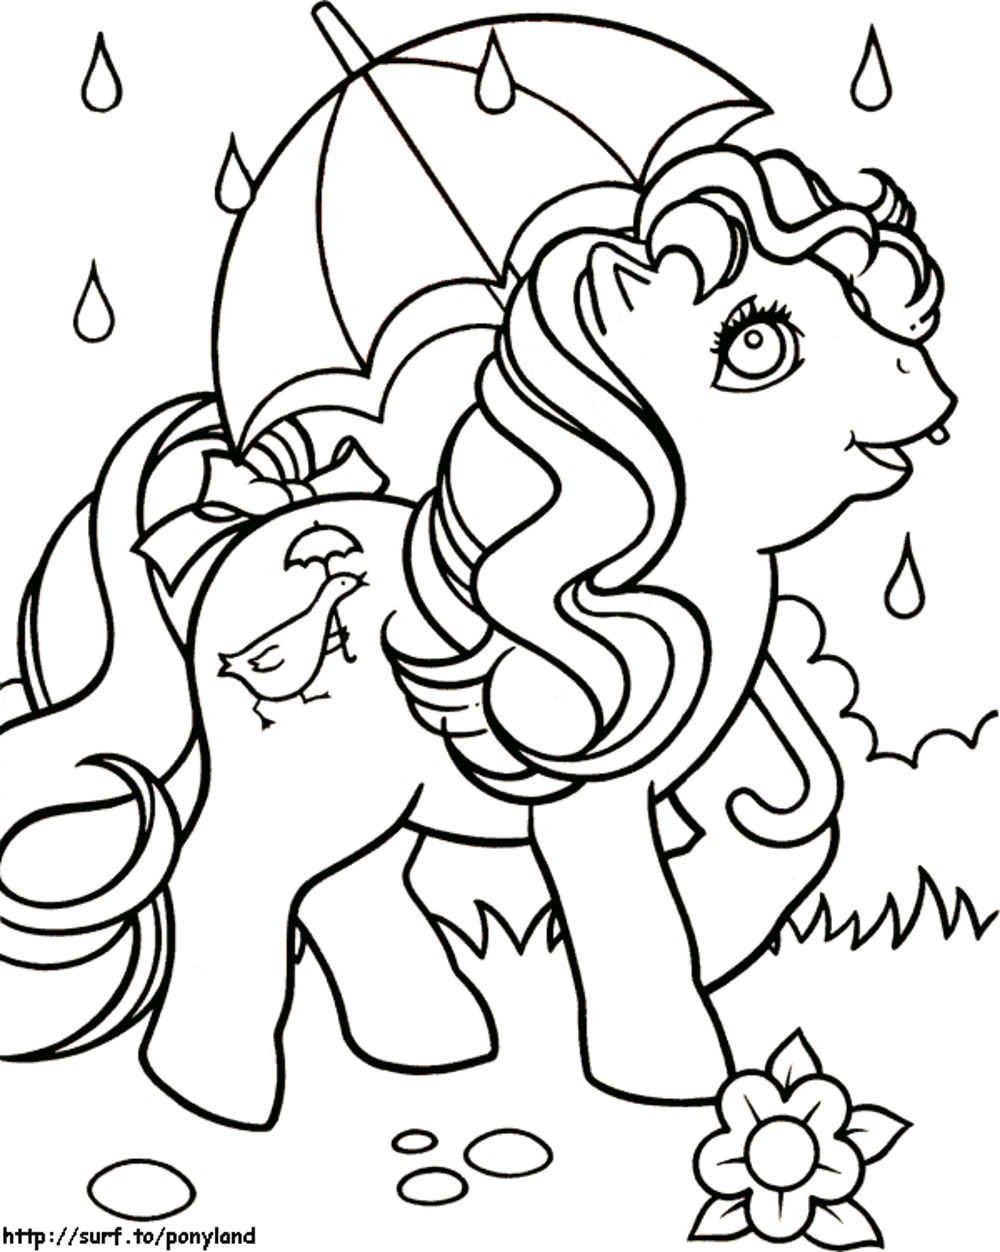 my little pony coloring pages printable kids colouring pages - Ree Printable My Little Pony Coloring Pages